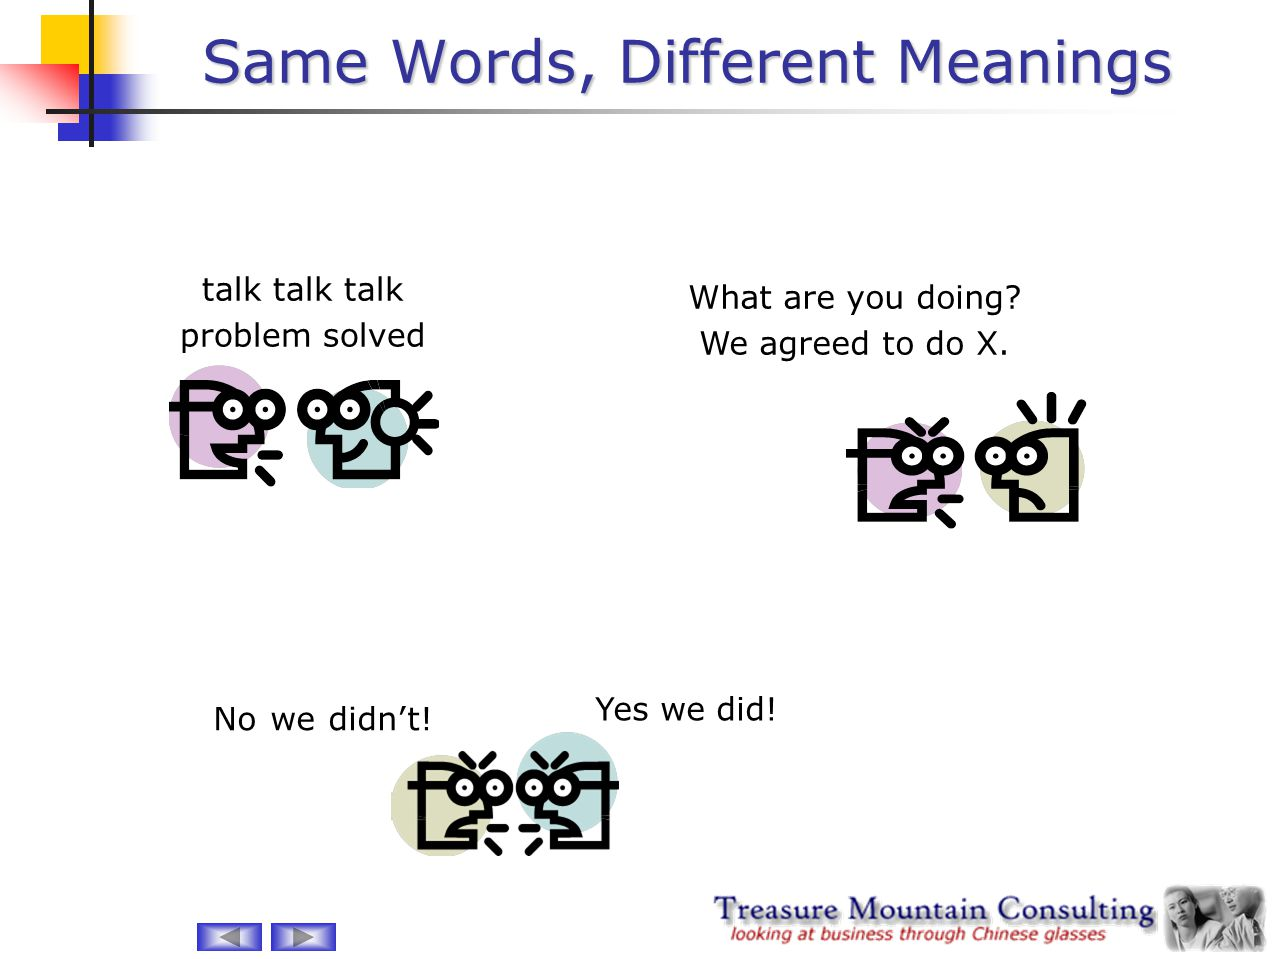 Same Words, Different Meanings